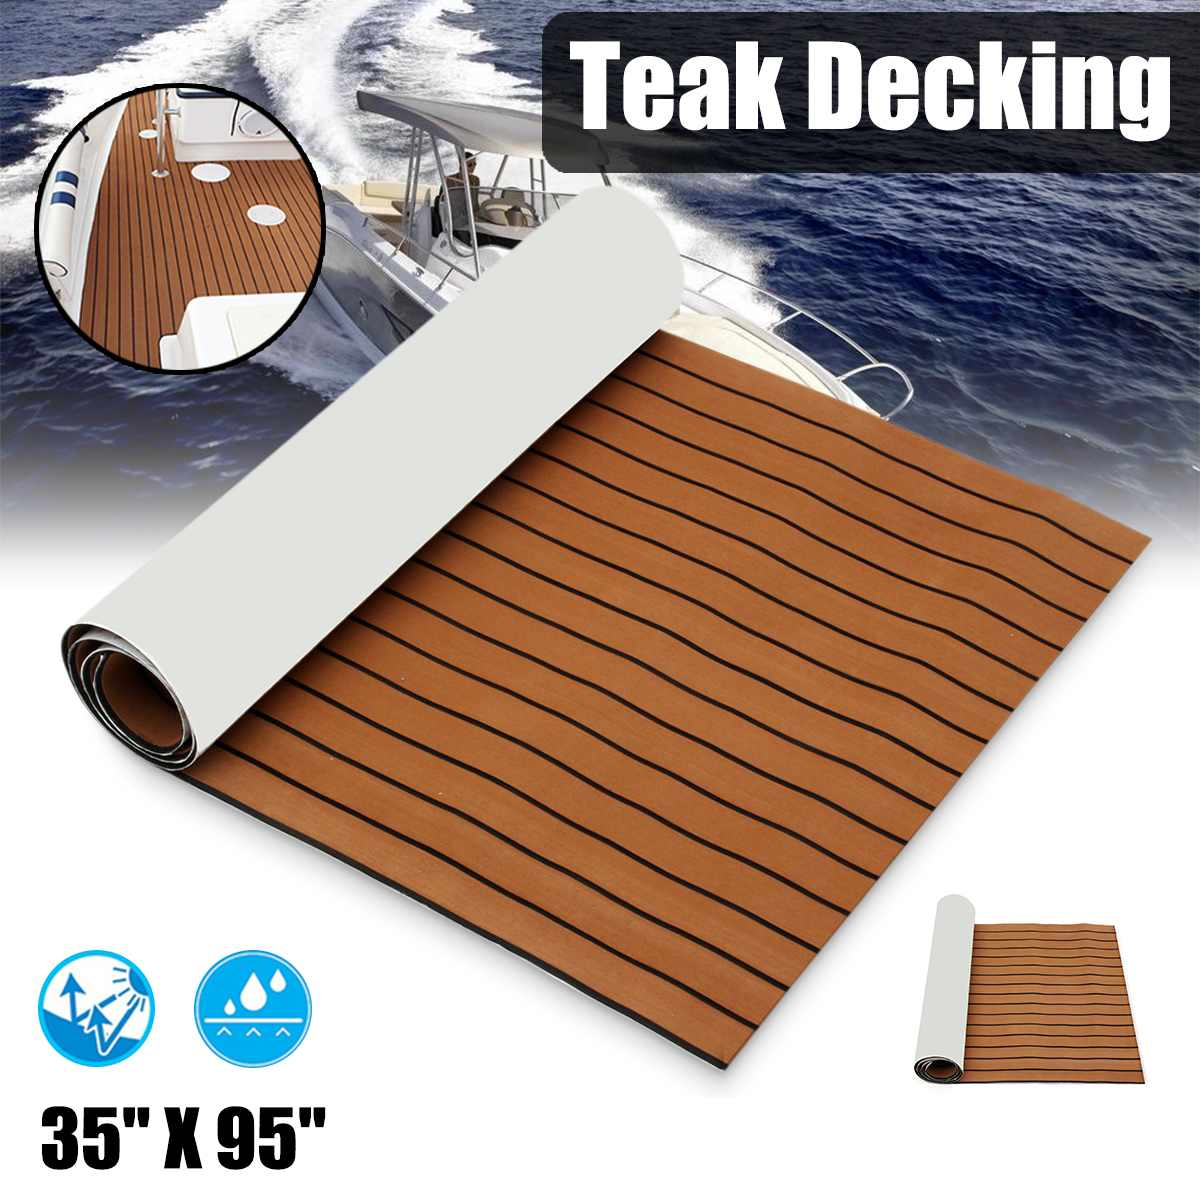 2400x900x5mm Self-Adhesive Foam Teak Decking EVA Foam Marine Flooring Faux Boat Decking Sheet Accessories Marine 3 Styles